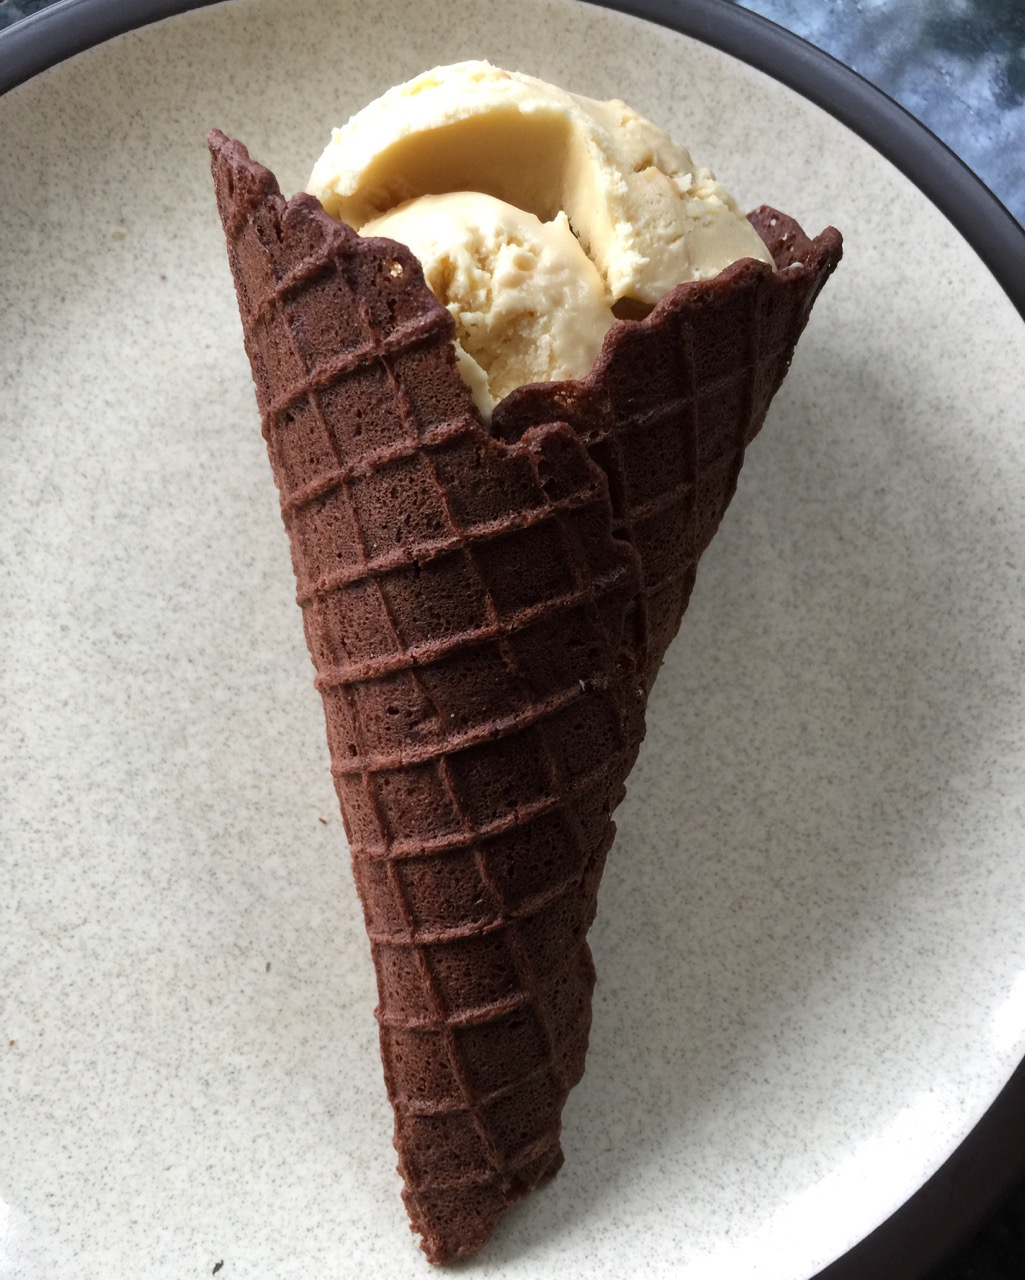 chocolate wafer cone with vanilla ice cream